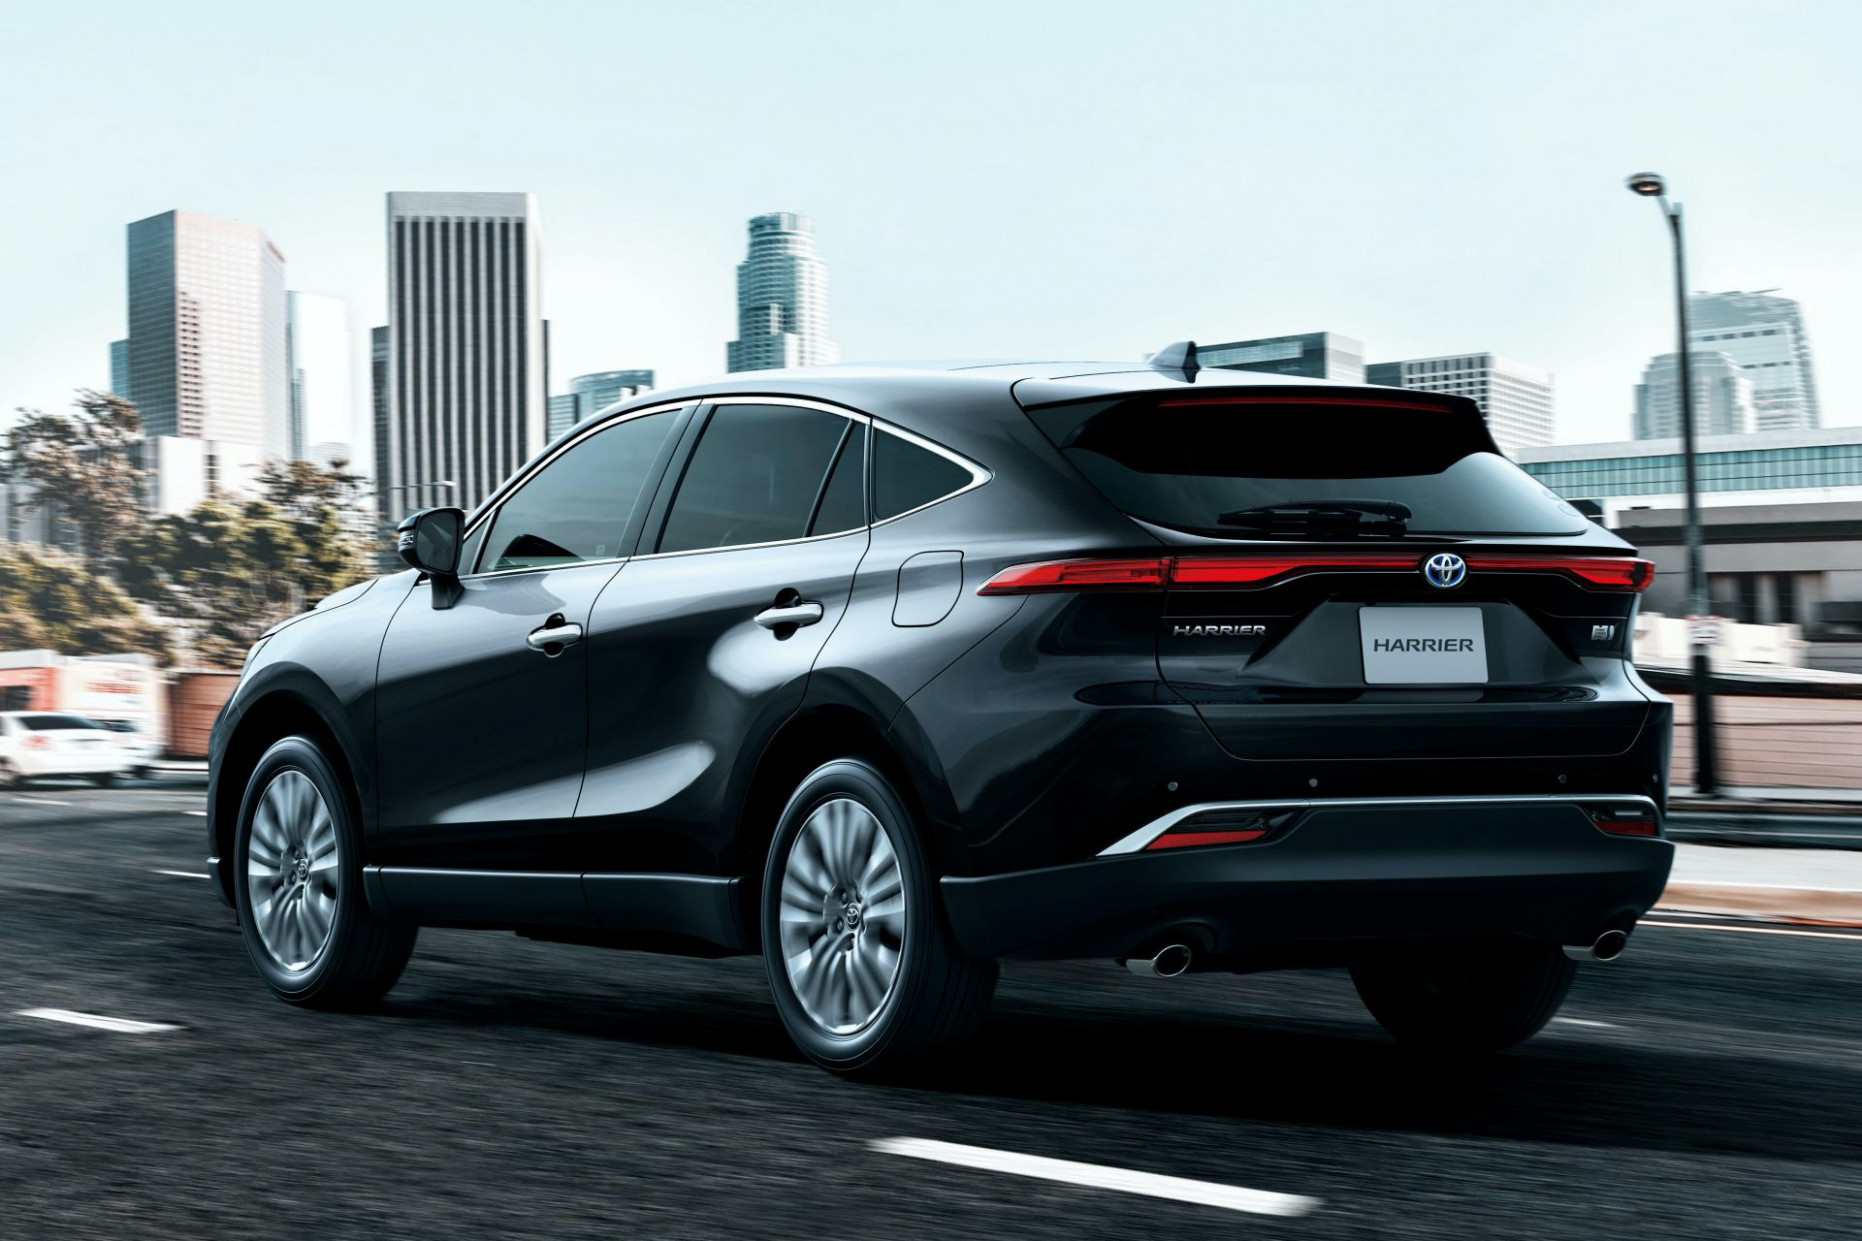 New 12 Toyota Harrier Is A Good Looking RAV12-Based SUV You Can ...